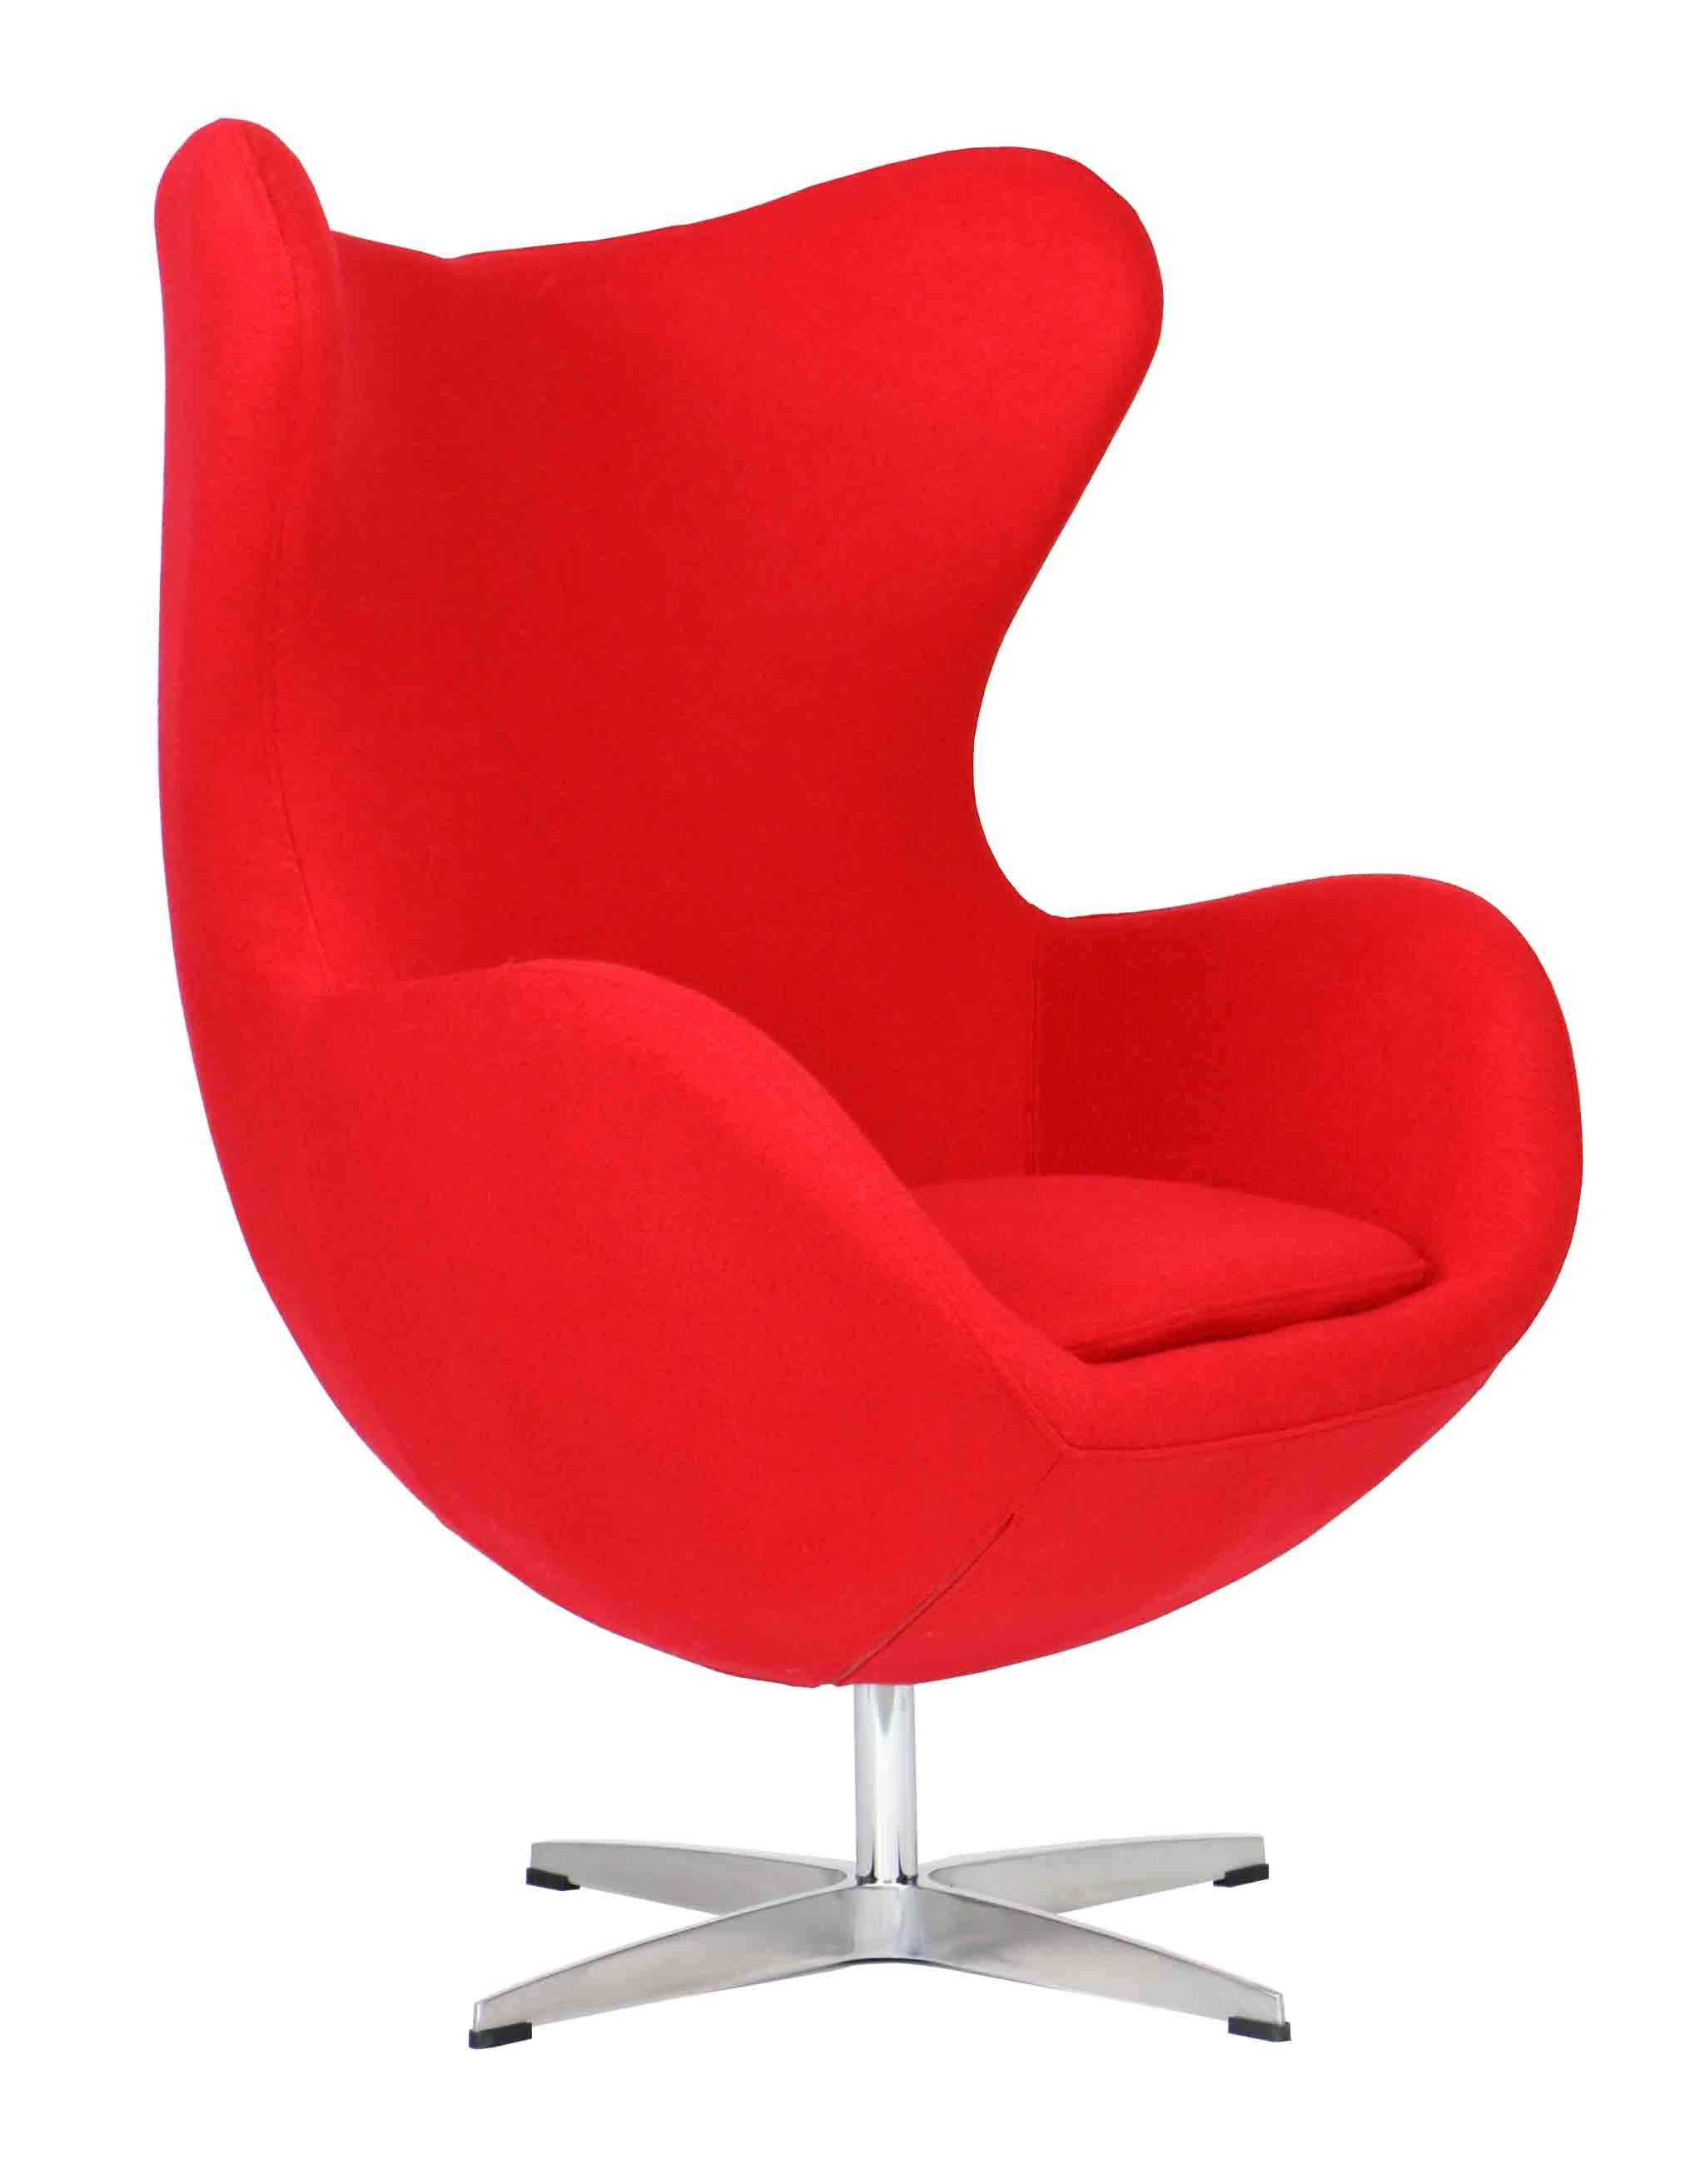 designer replica egg chair in red furniture home d cor fortytwo. Black Bedroom Furniture Sets. Home Design Ideas